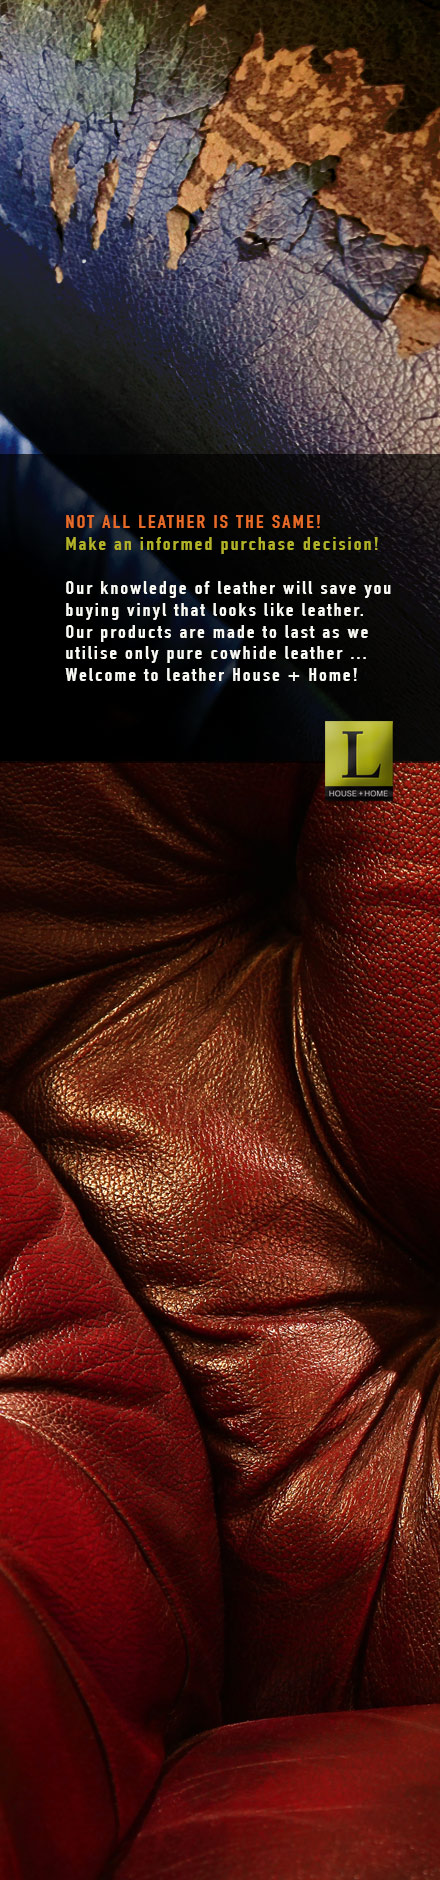 Pure cowhide Leather Lounges Clearance Sale Myaree WA PERTH